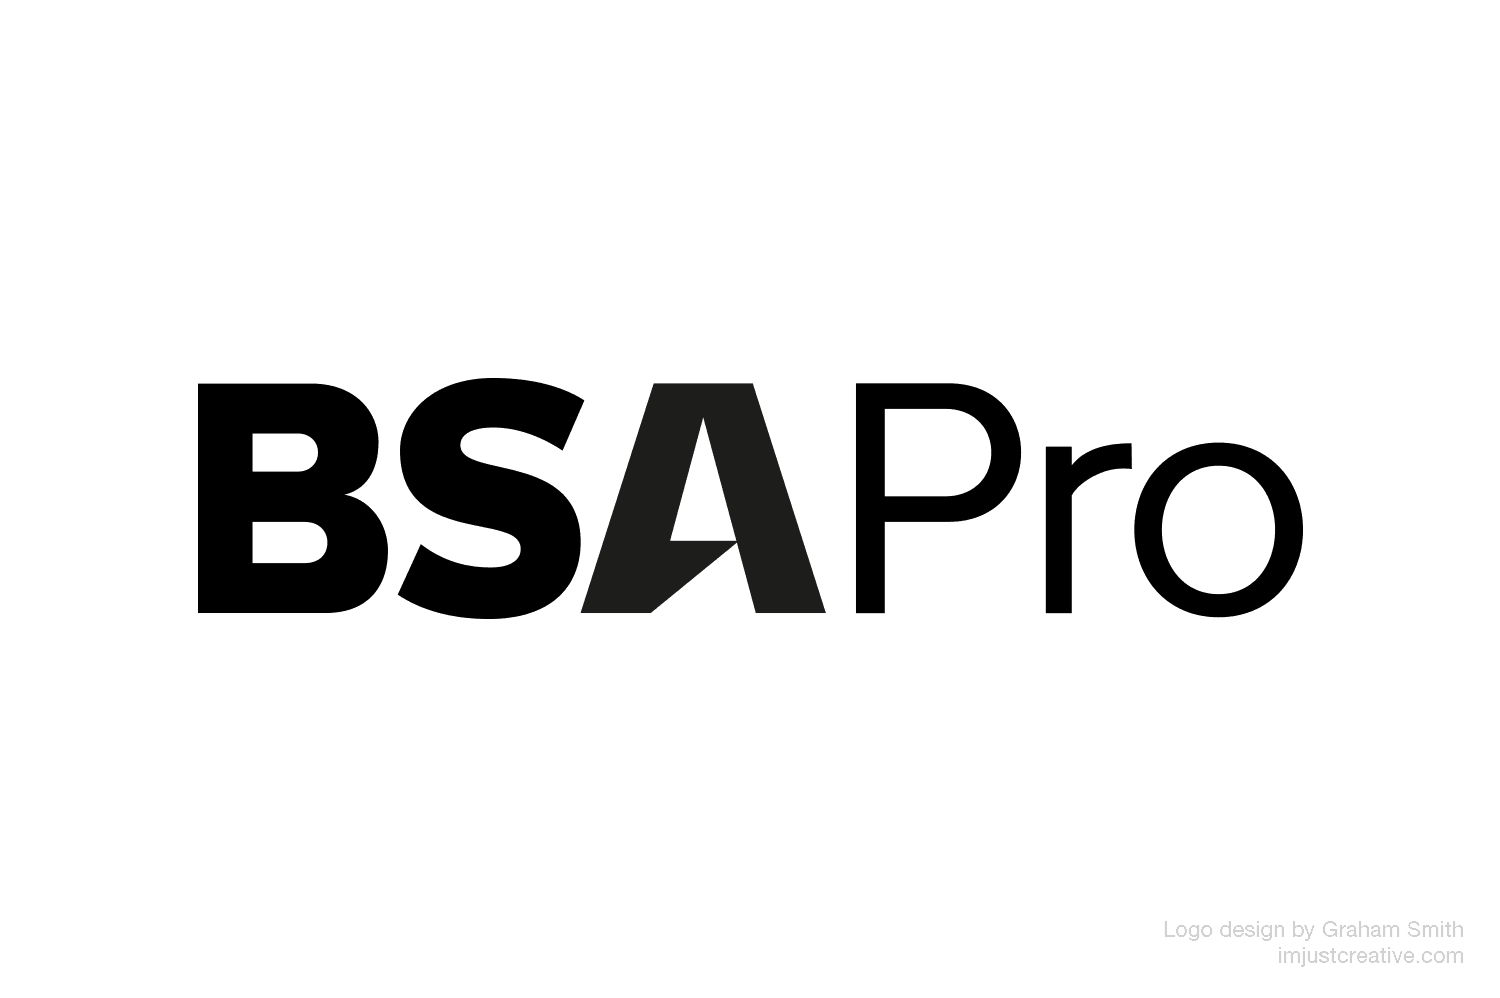 BSA Pro logo designed by Graham Smith